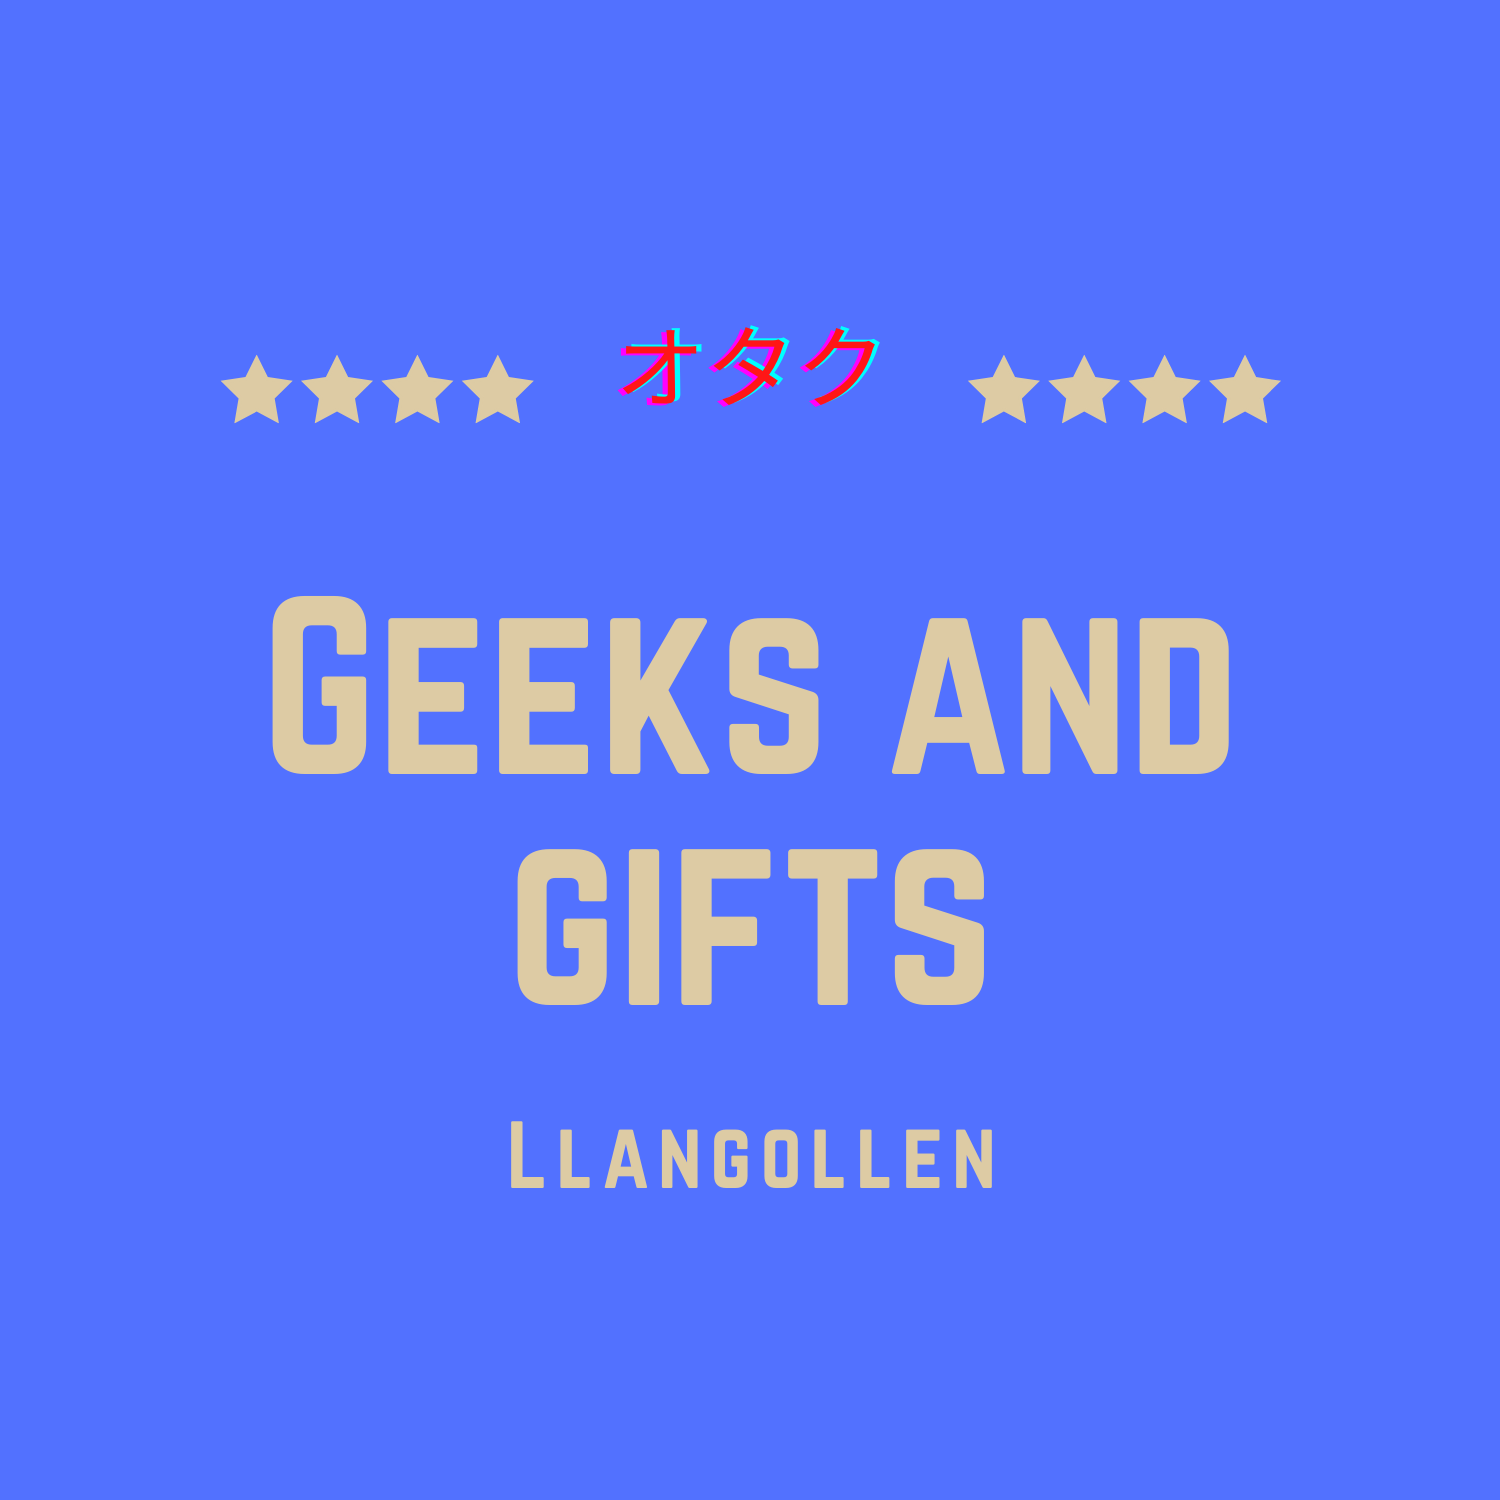 Geeks and gifts Logo